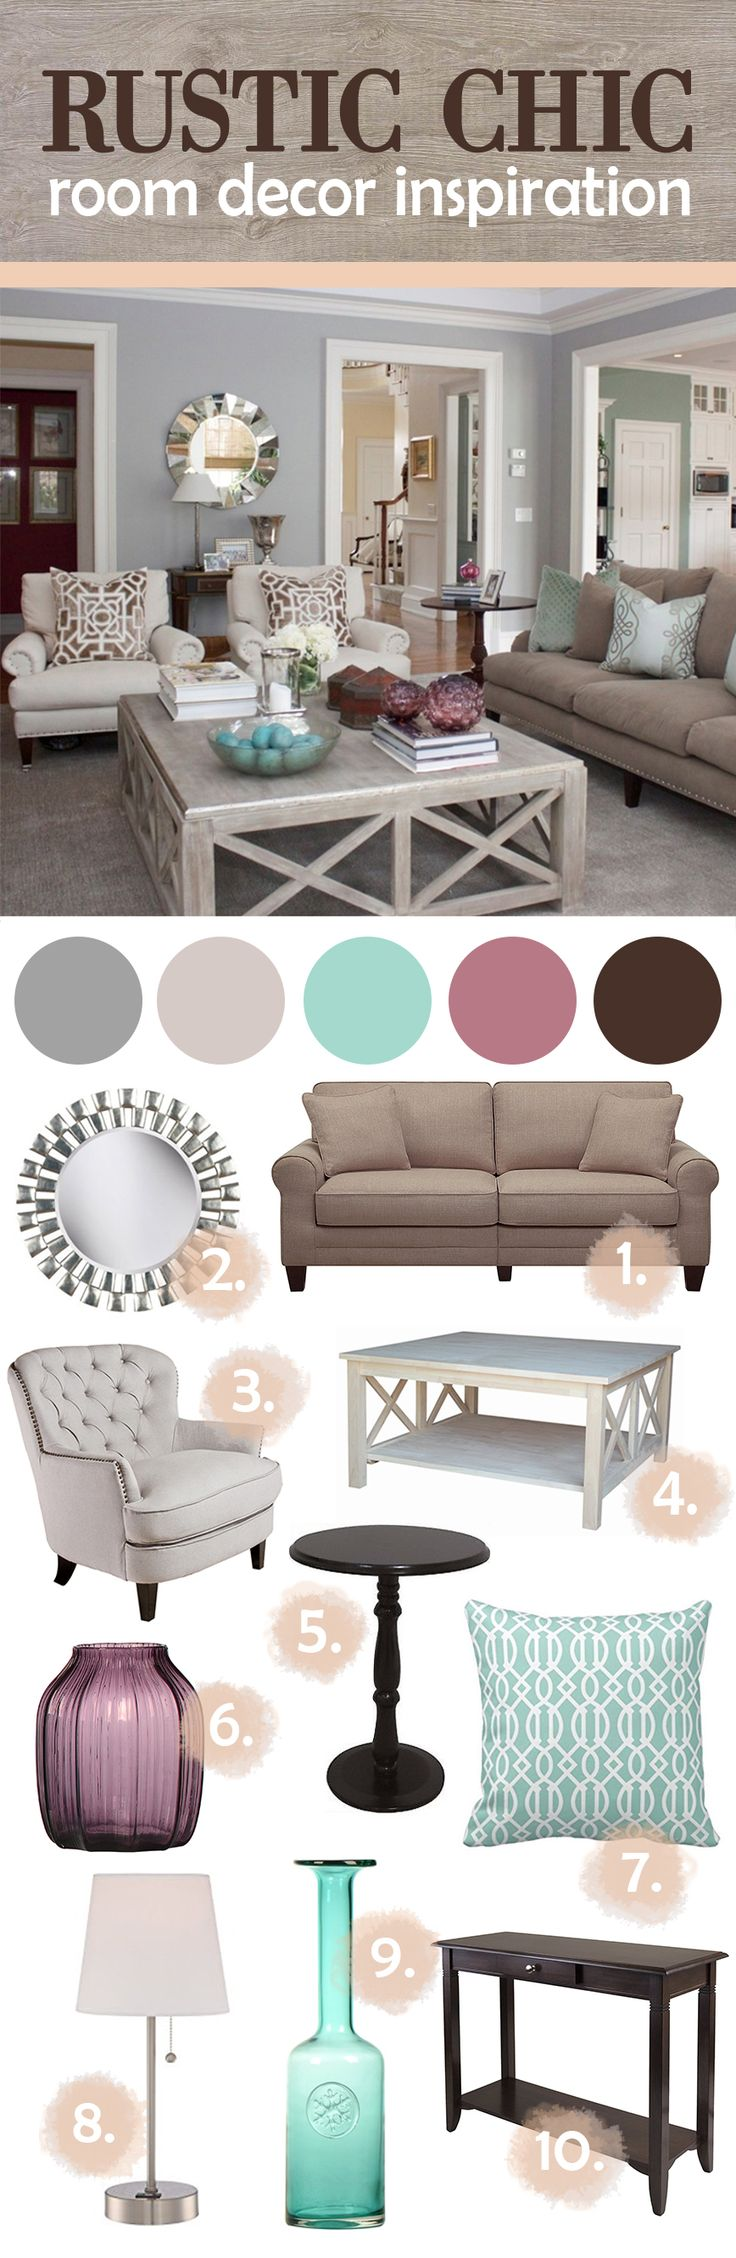 Rustic Chic Room Decor Inspiration #salon_decor_colors